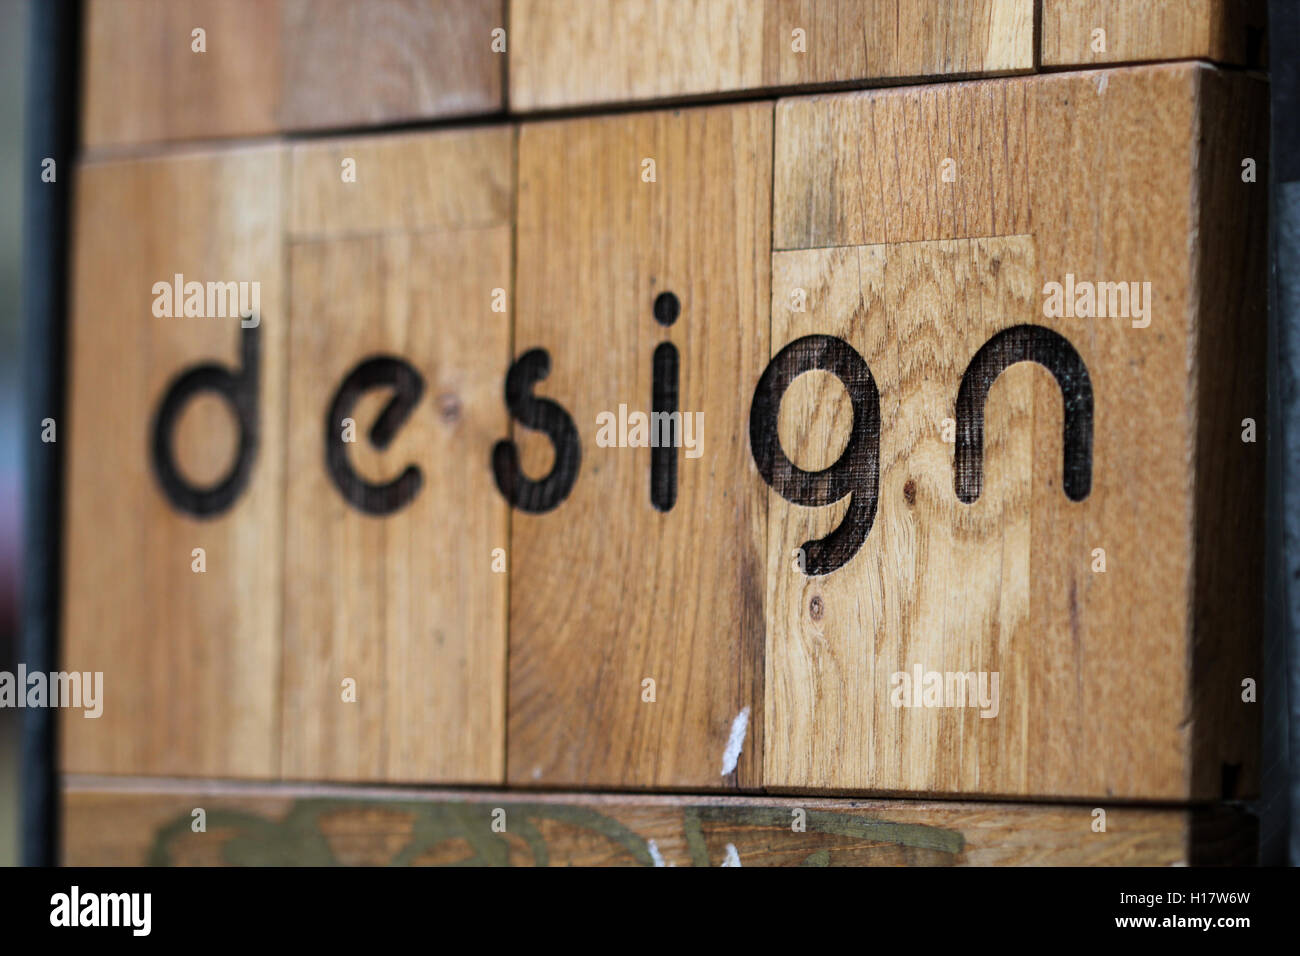 Wooden surface with word design on it - Stock Image